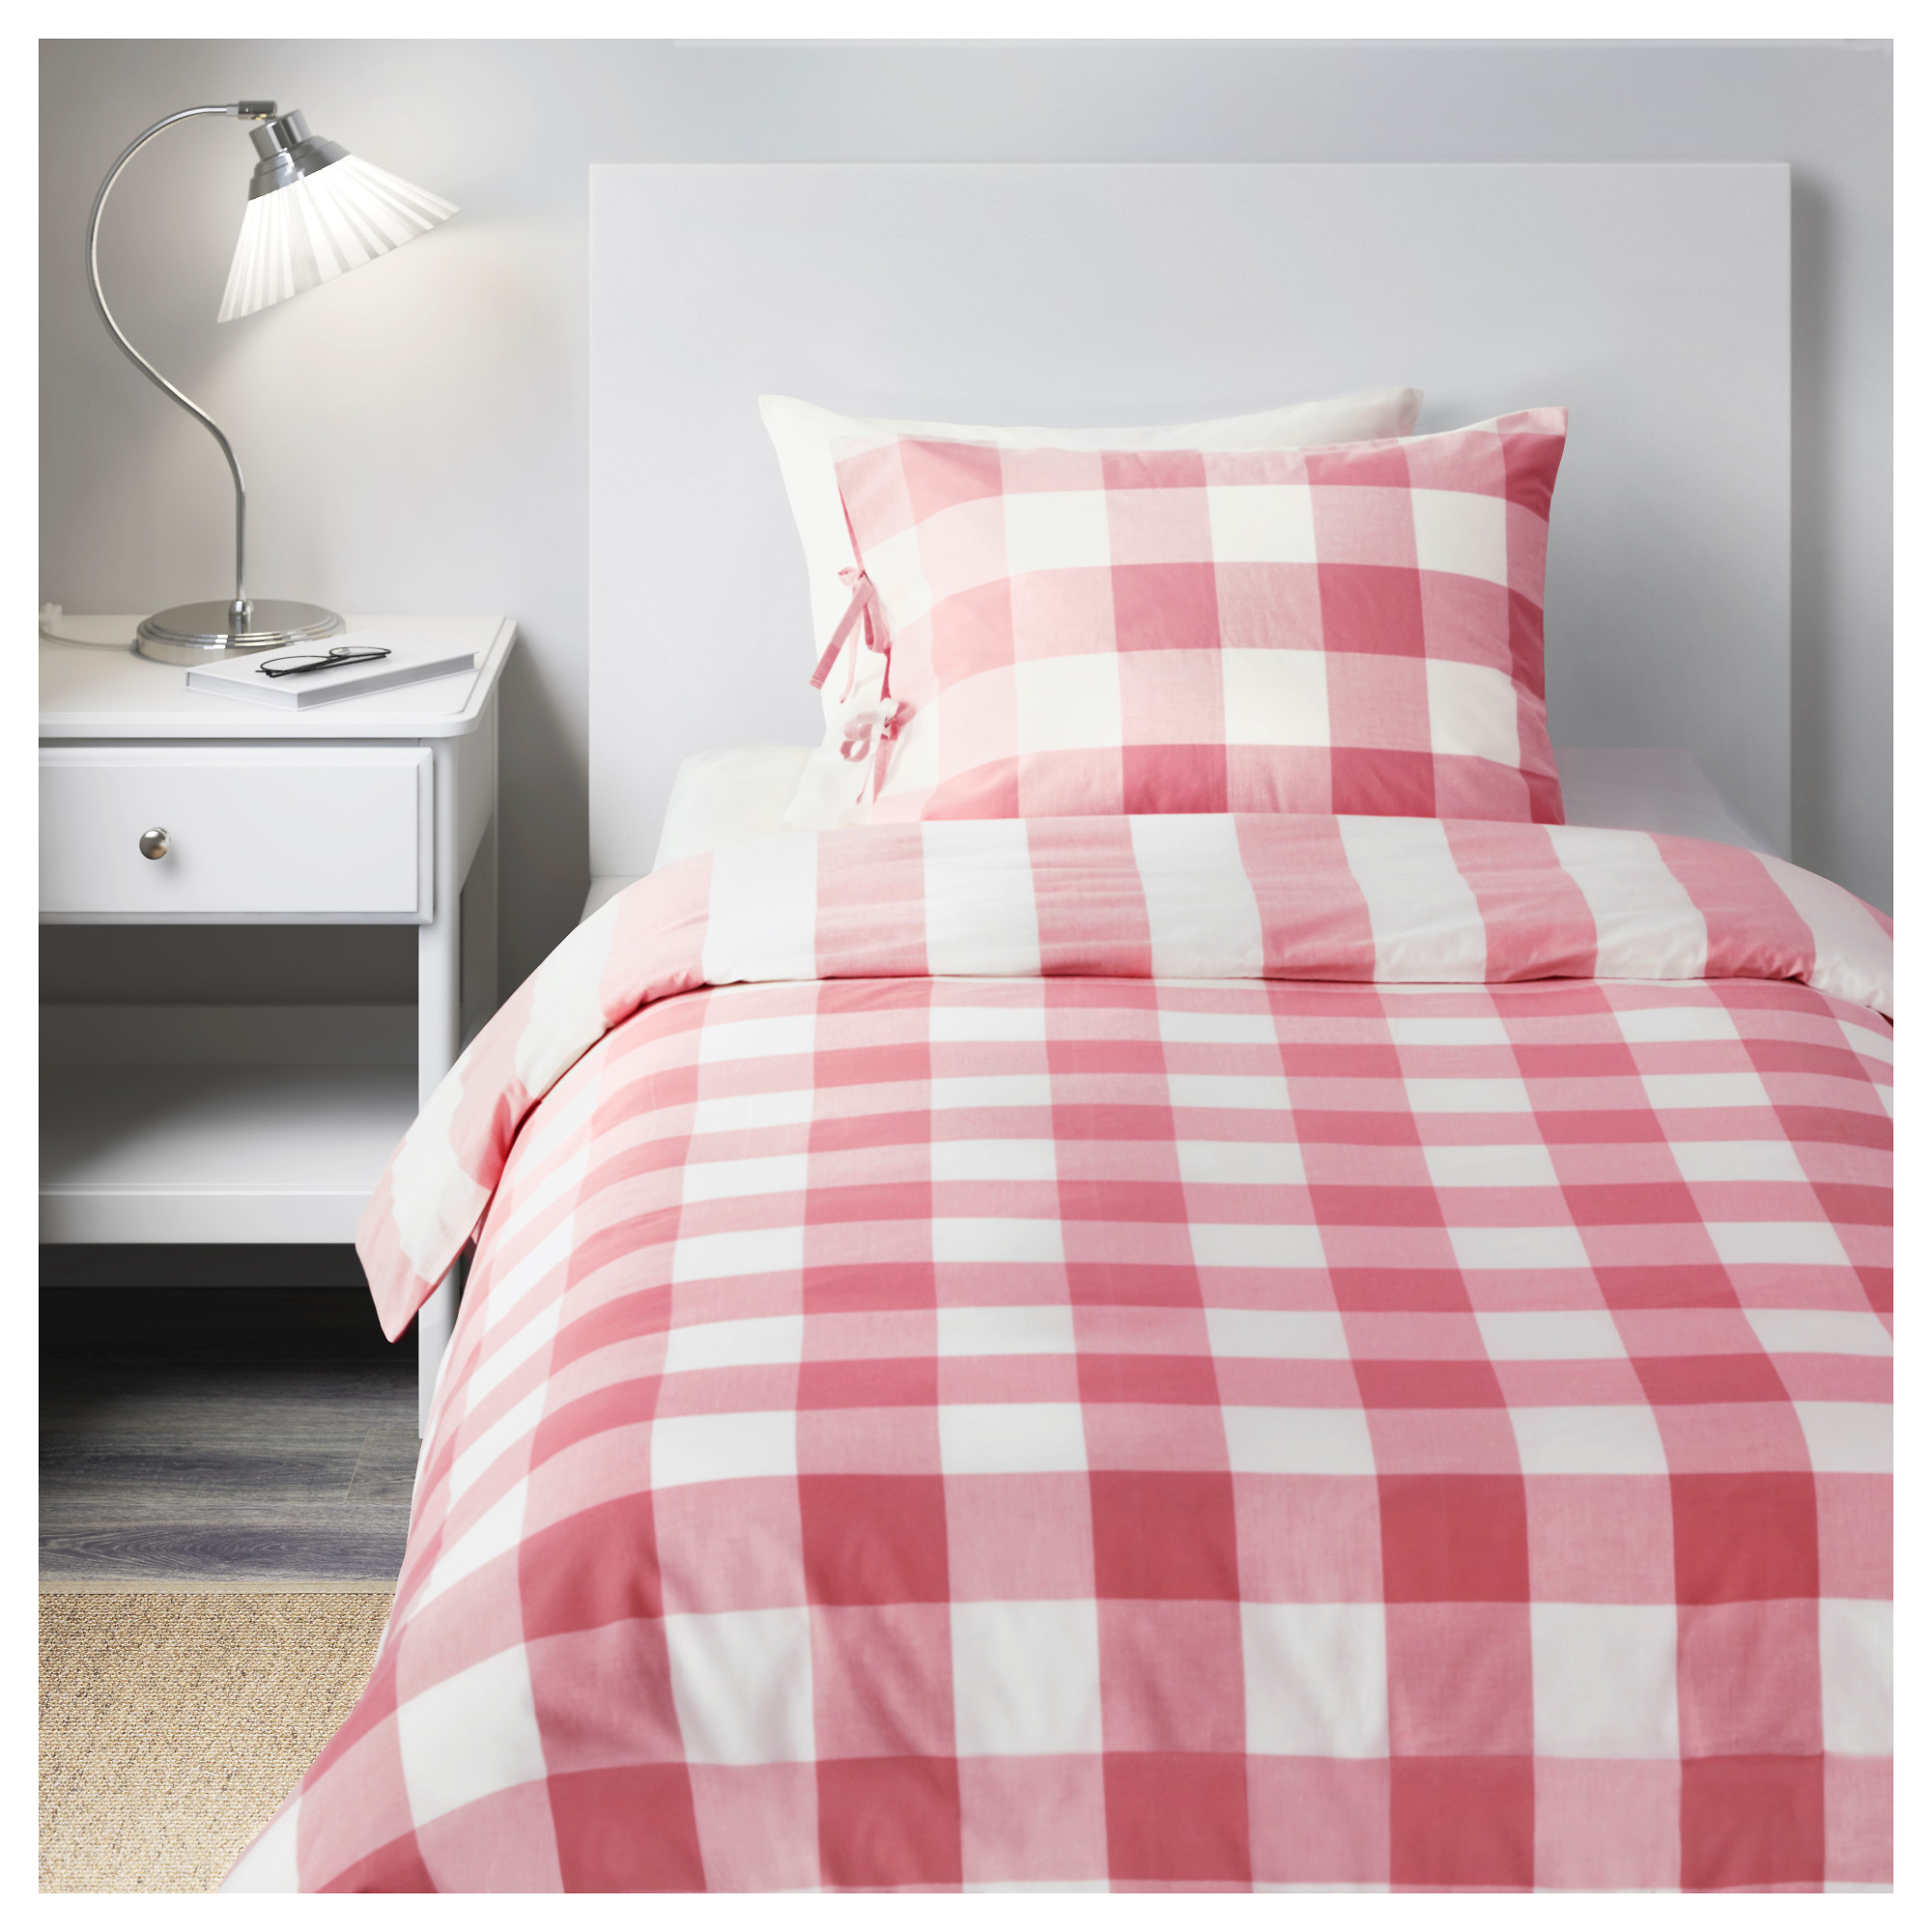 EMMIE RUTA Duvet cover and pillowcase s    Full Queen  Double Queen    IKEA. EMMIE RUTA Duvet cover and pillowcase s    Full Queen  Double